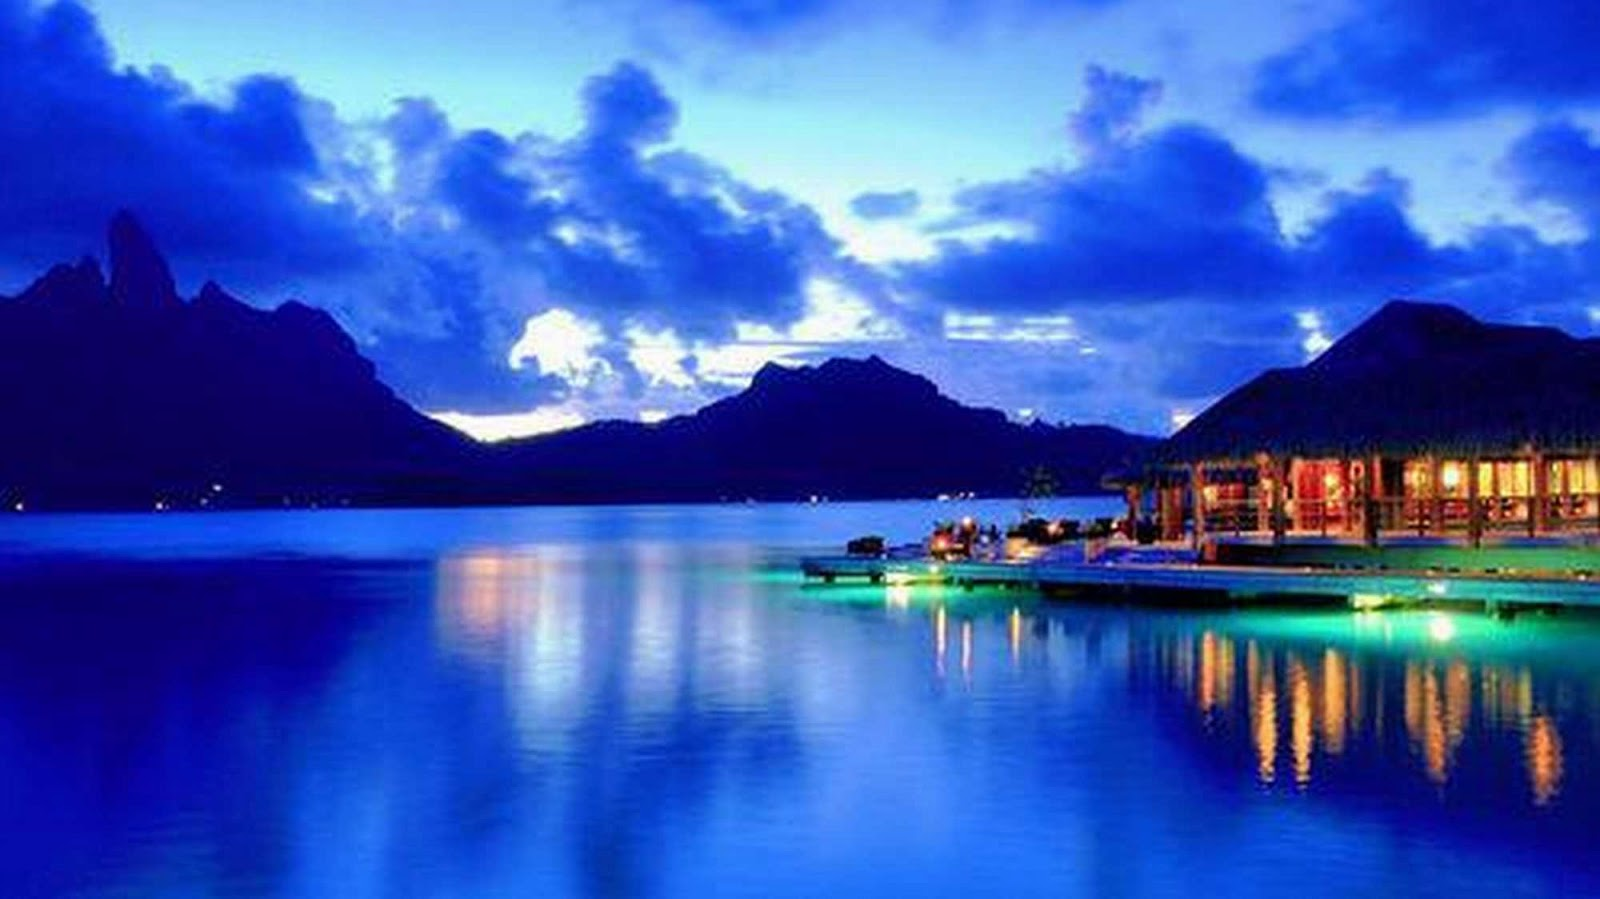 The Nicest Pictures: Bora Bora